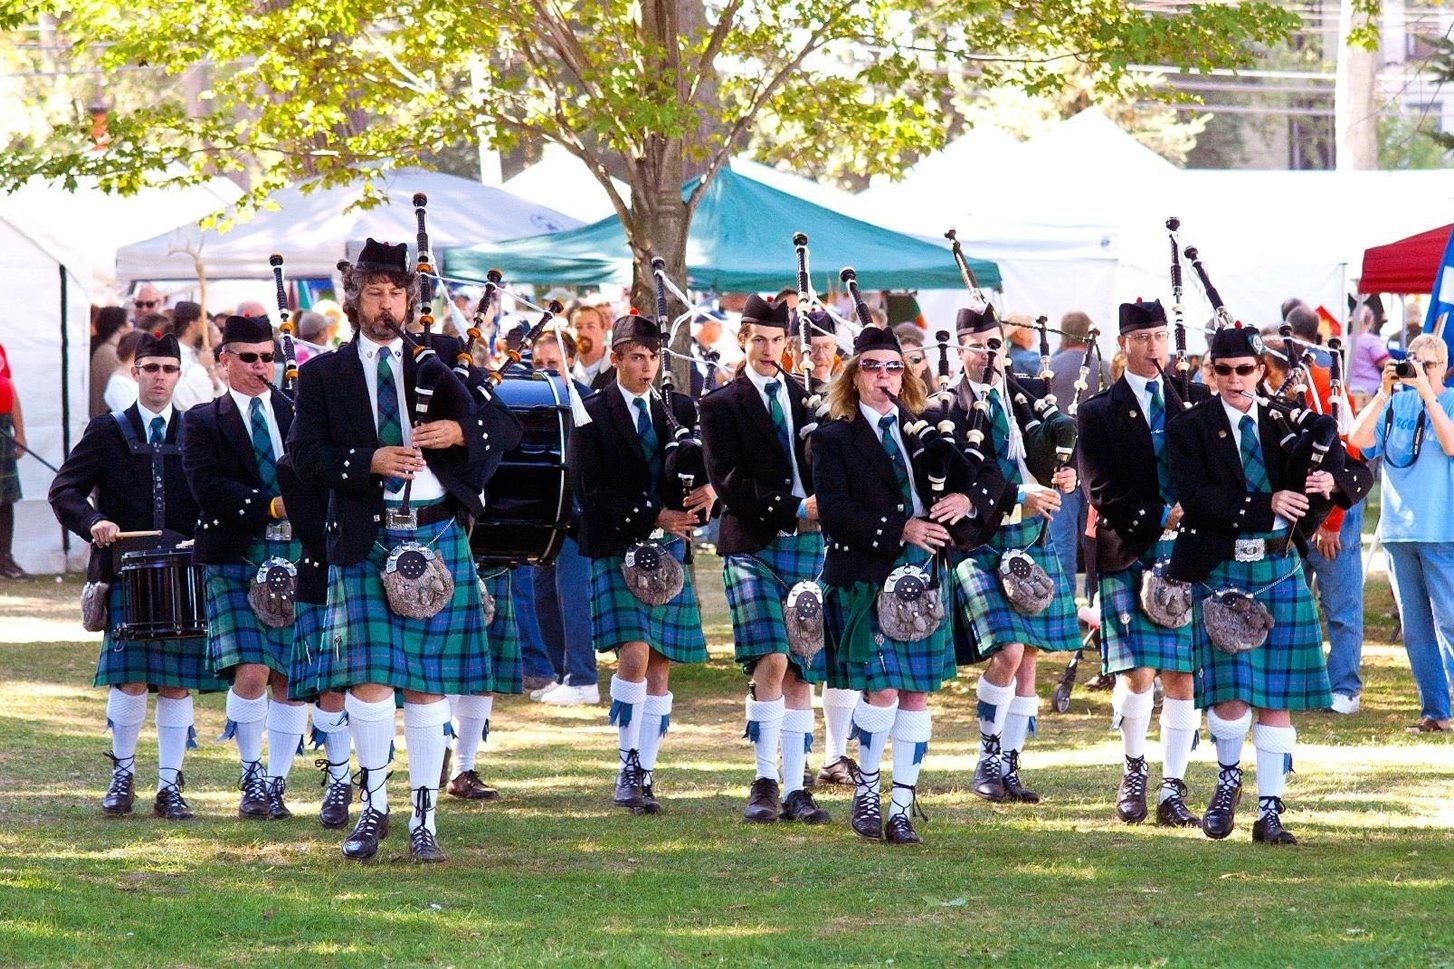 Nine pipe bands are scheduled to perform at the Niagara Celtic Heritage Festival at Krull Park in Olcott.